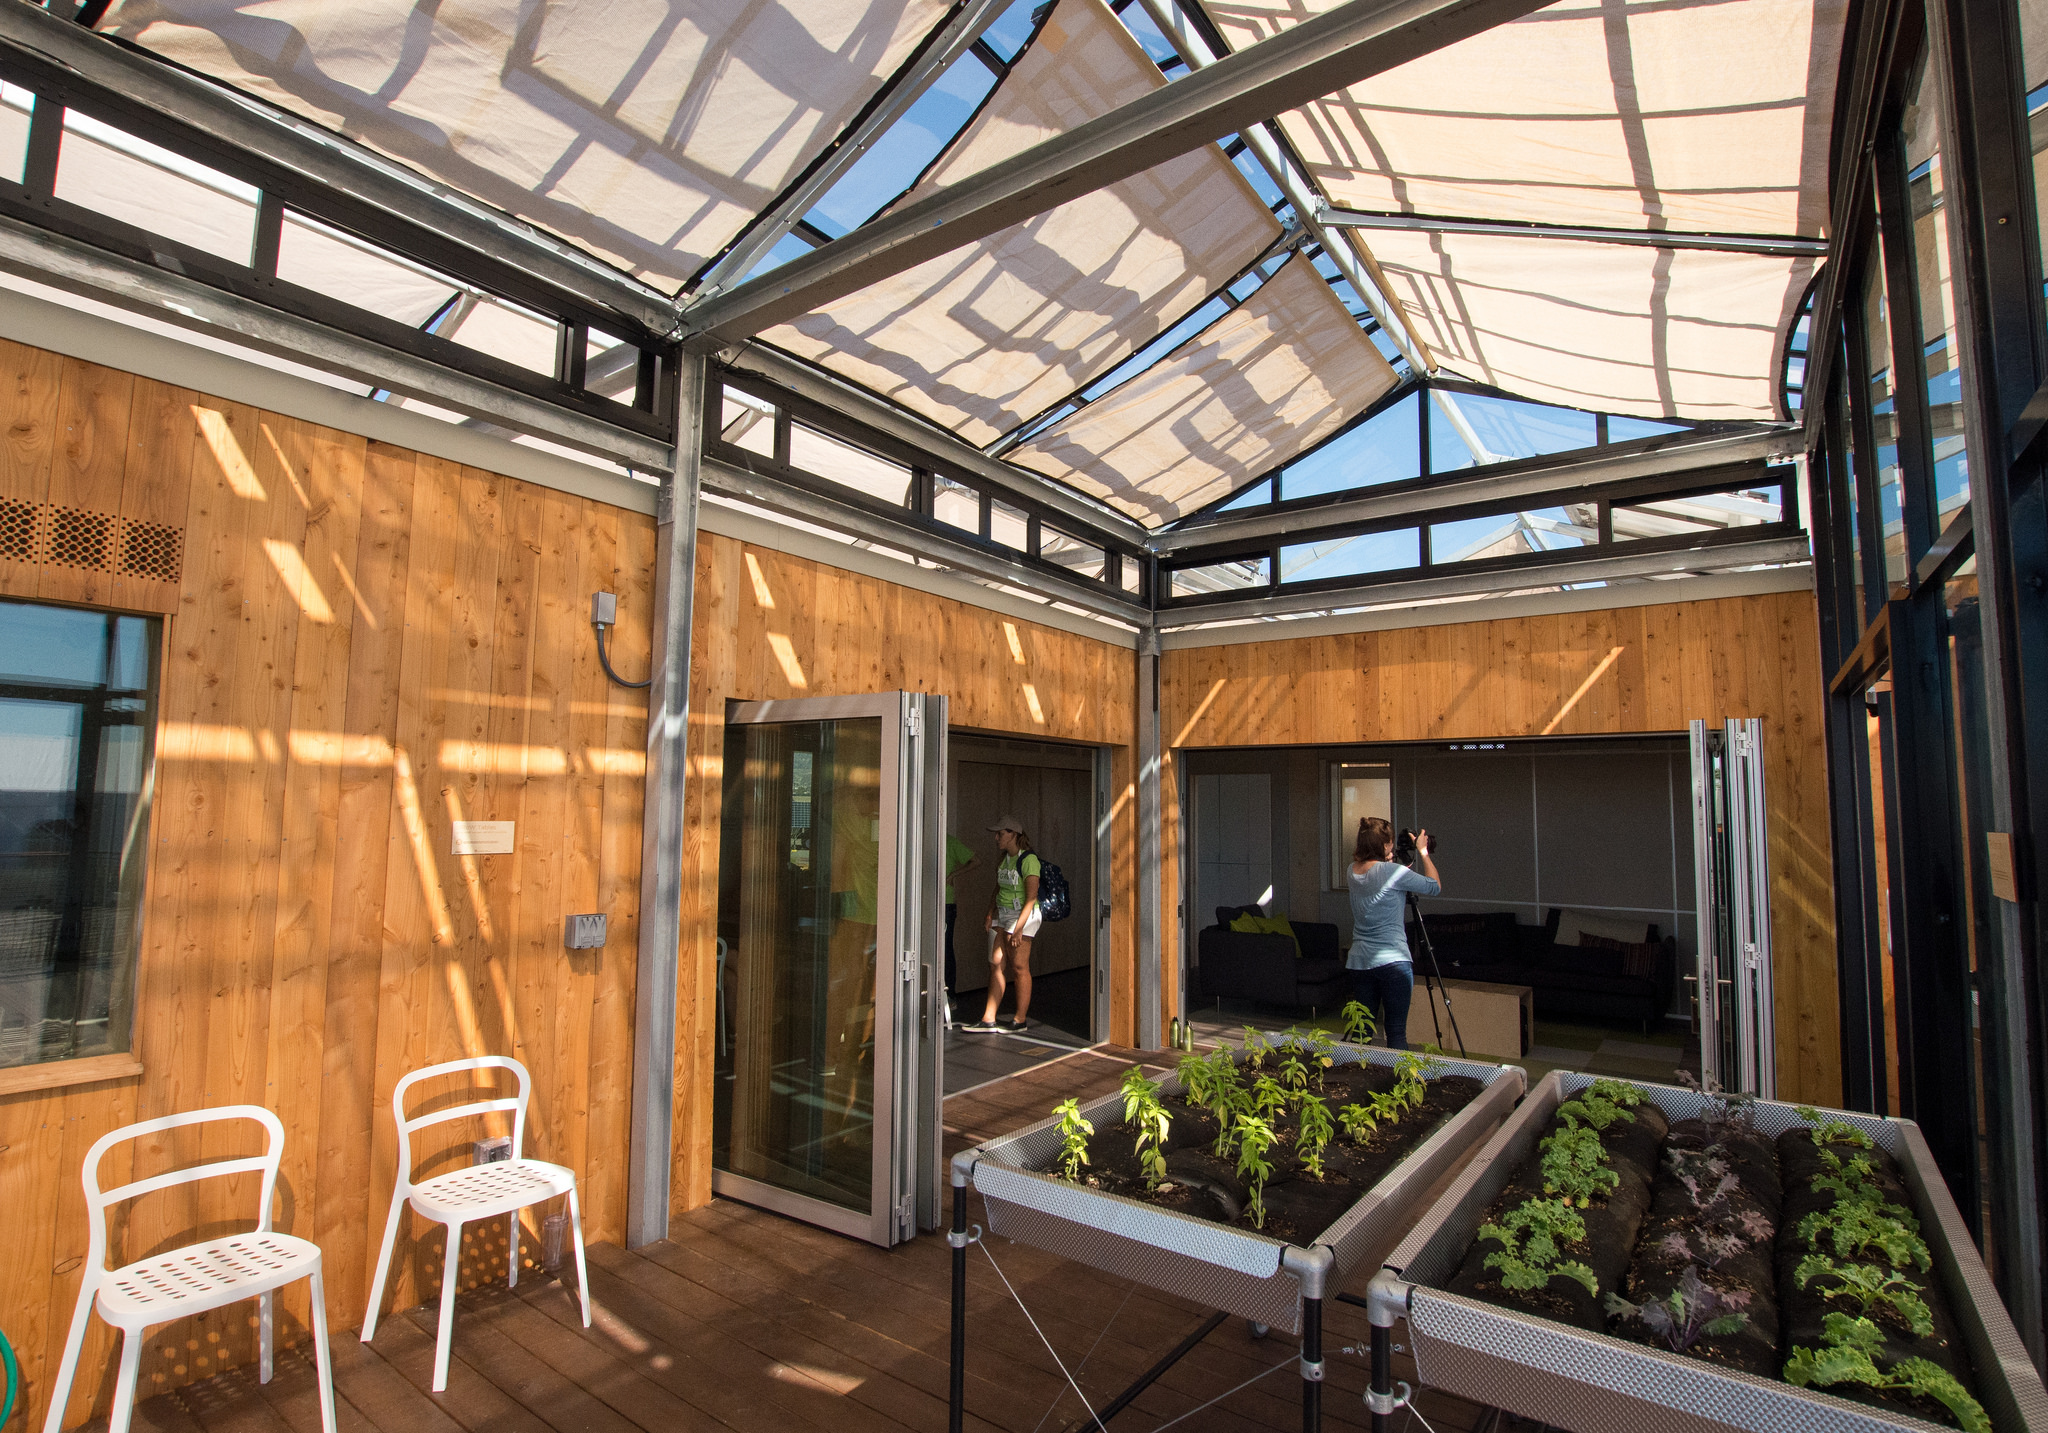 Geodesic Dome Home Dream House For Urban Gardeners Built By Ub Students Took